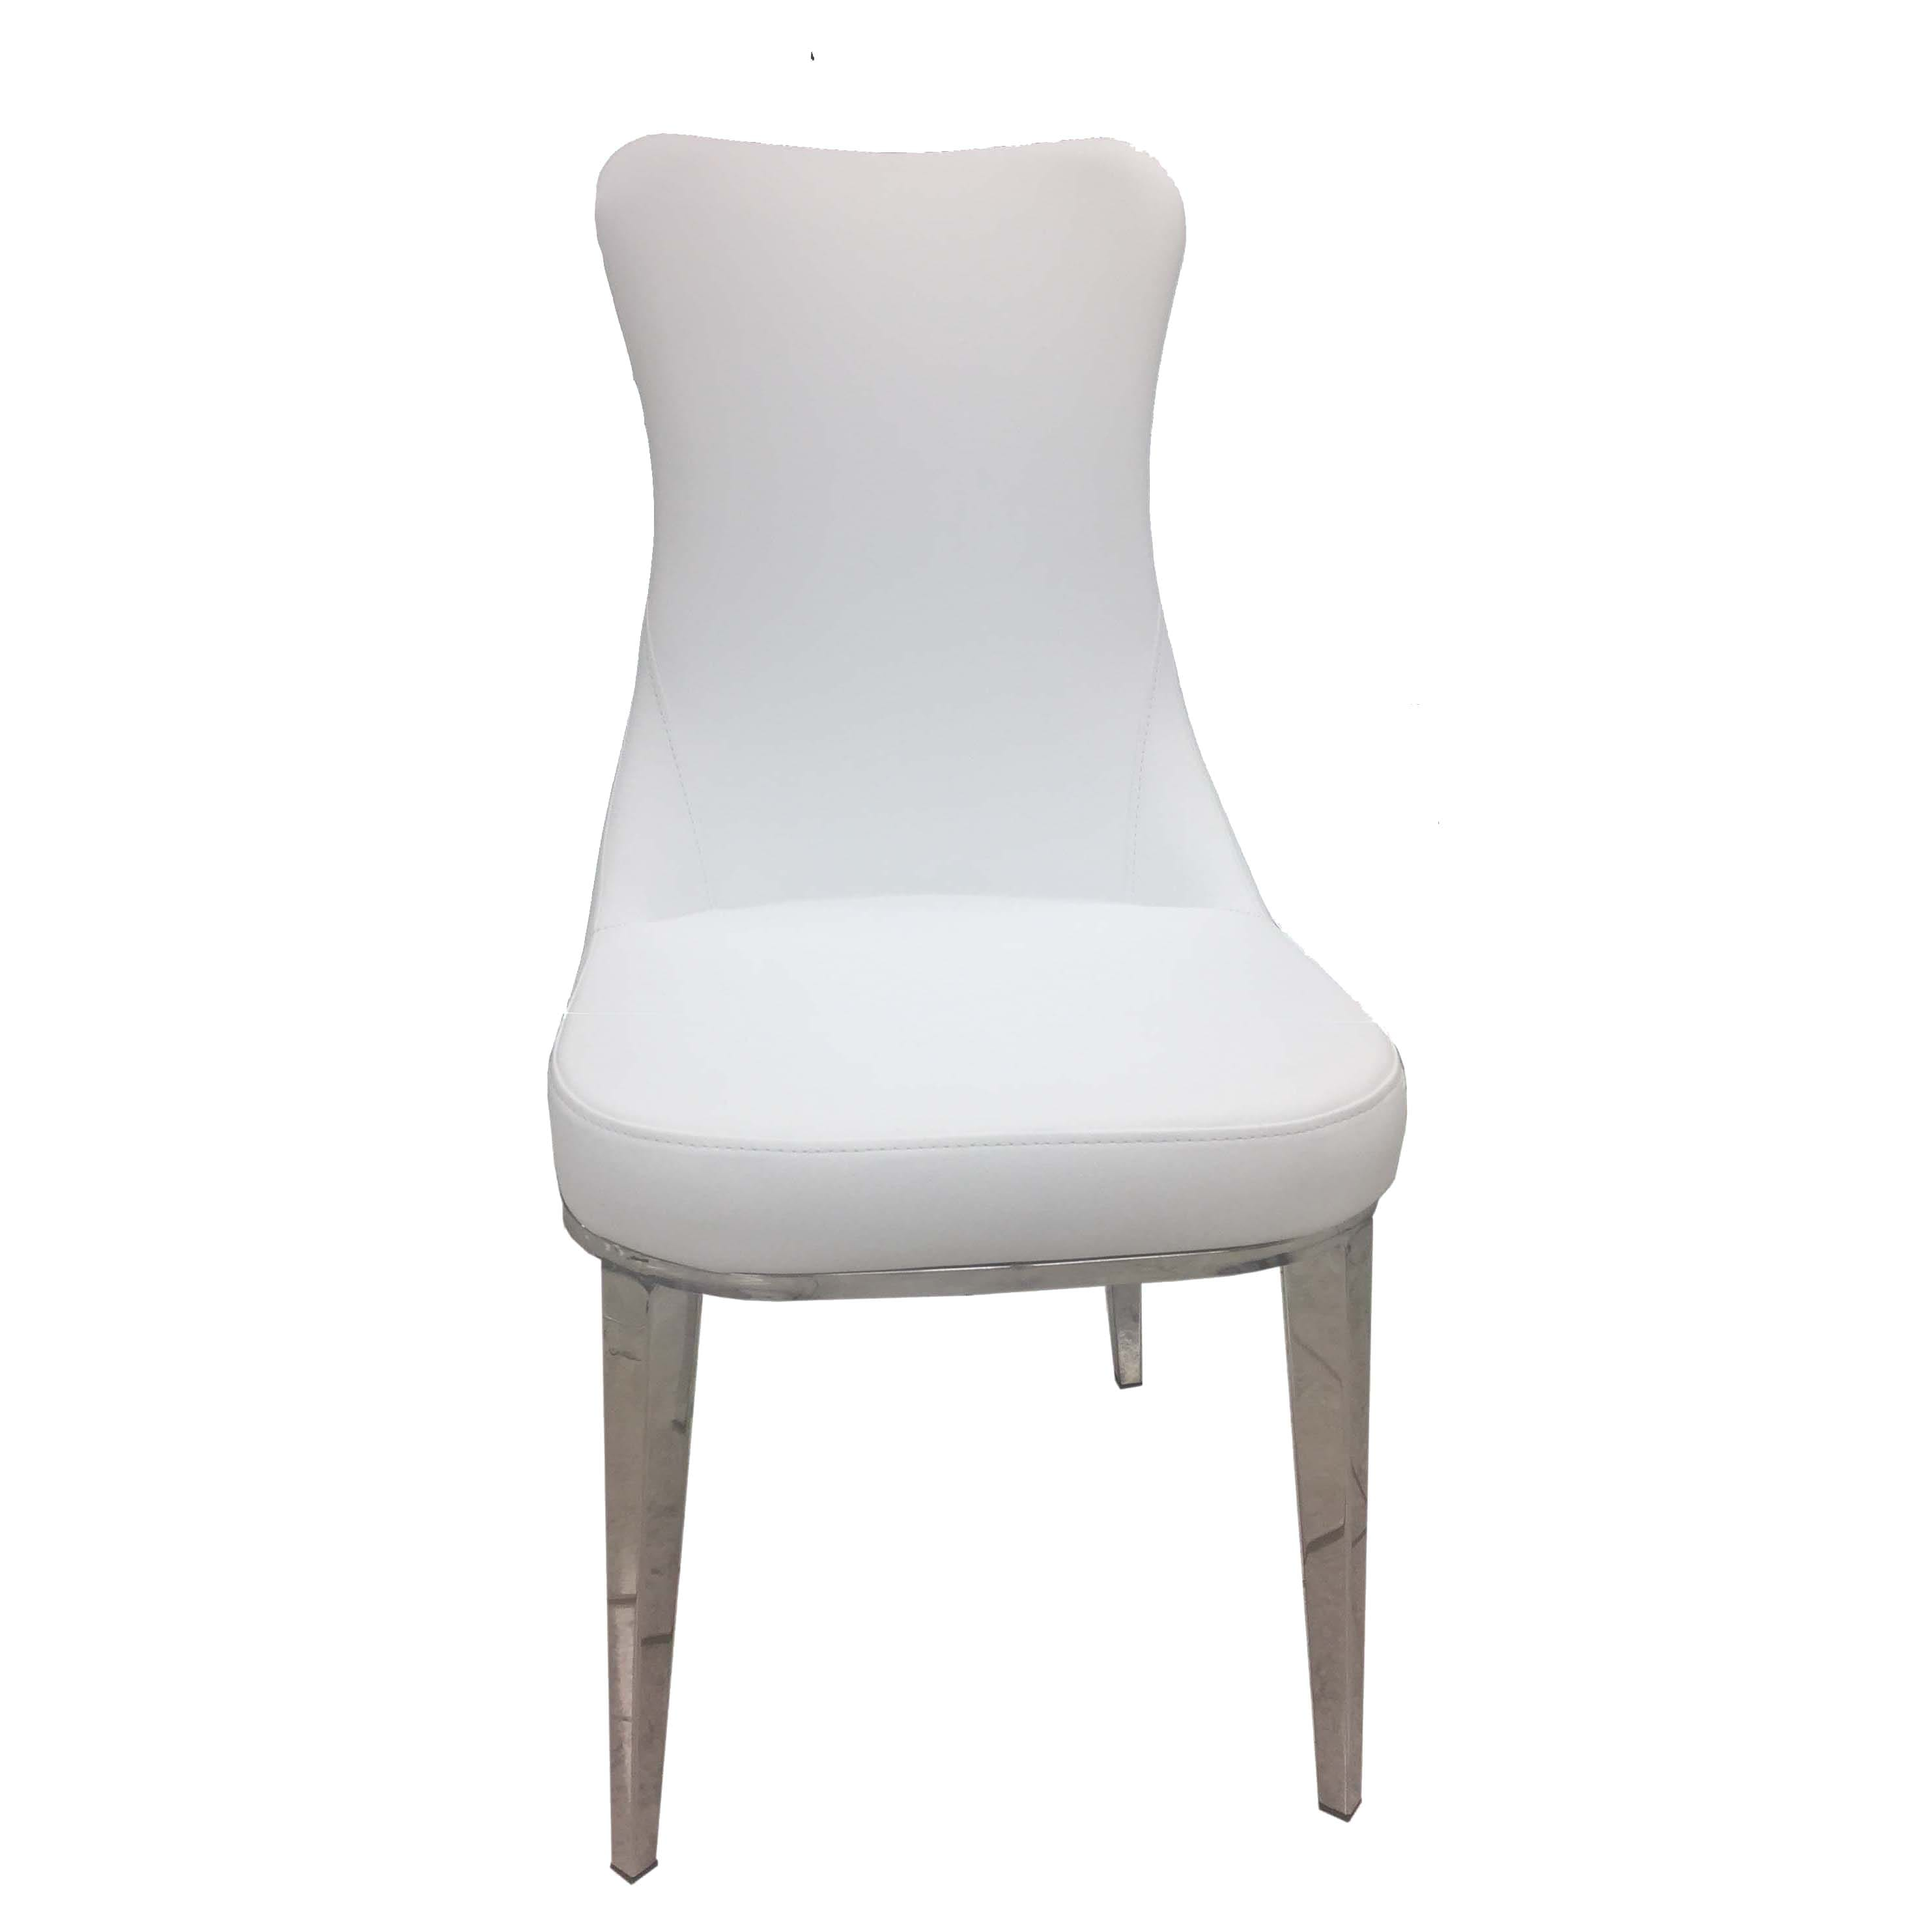 Excellent 6138 White Dining Chair Set Of 2 By Esf Andrewgaddart Wooden Chair Designs For Living Room Andrewgaddartcom